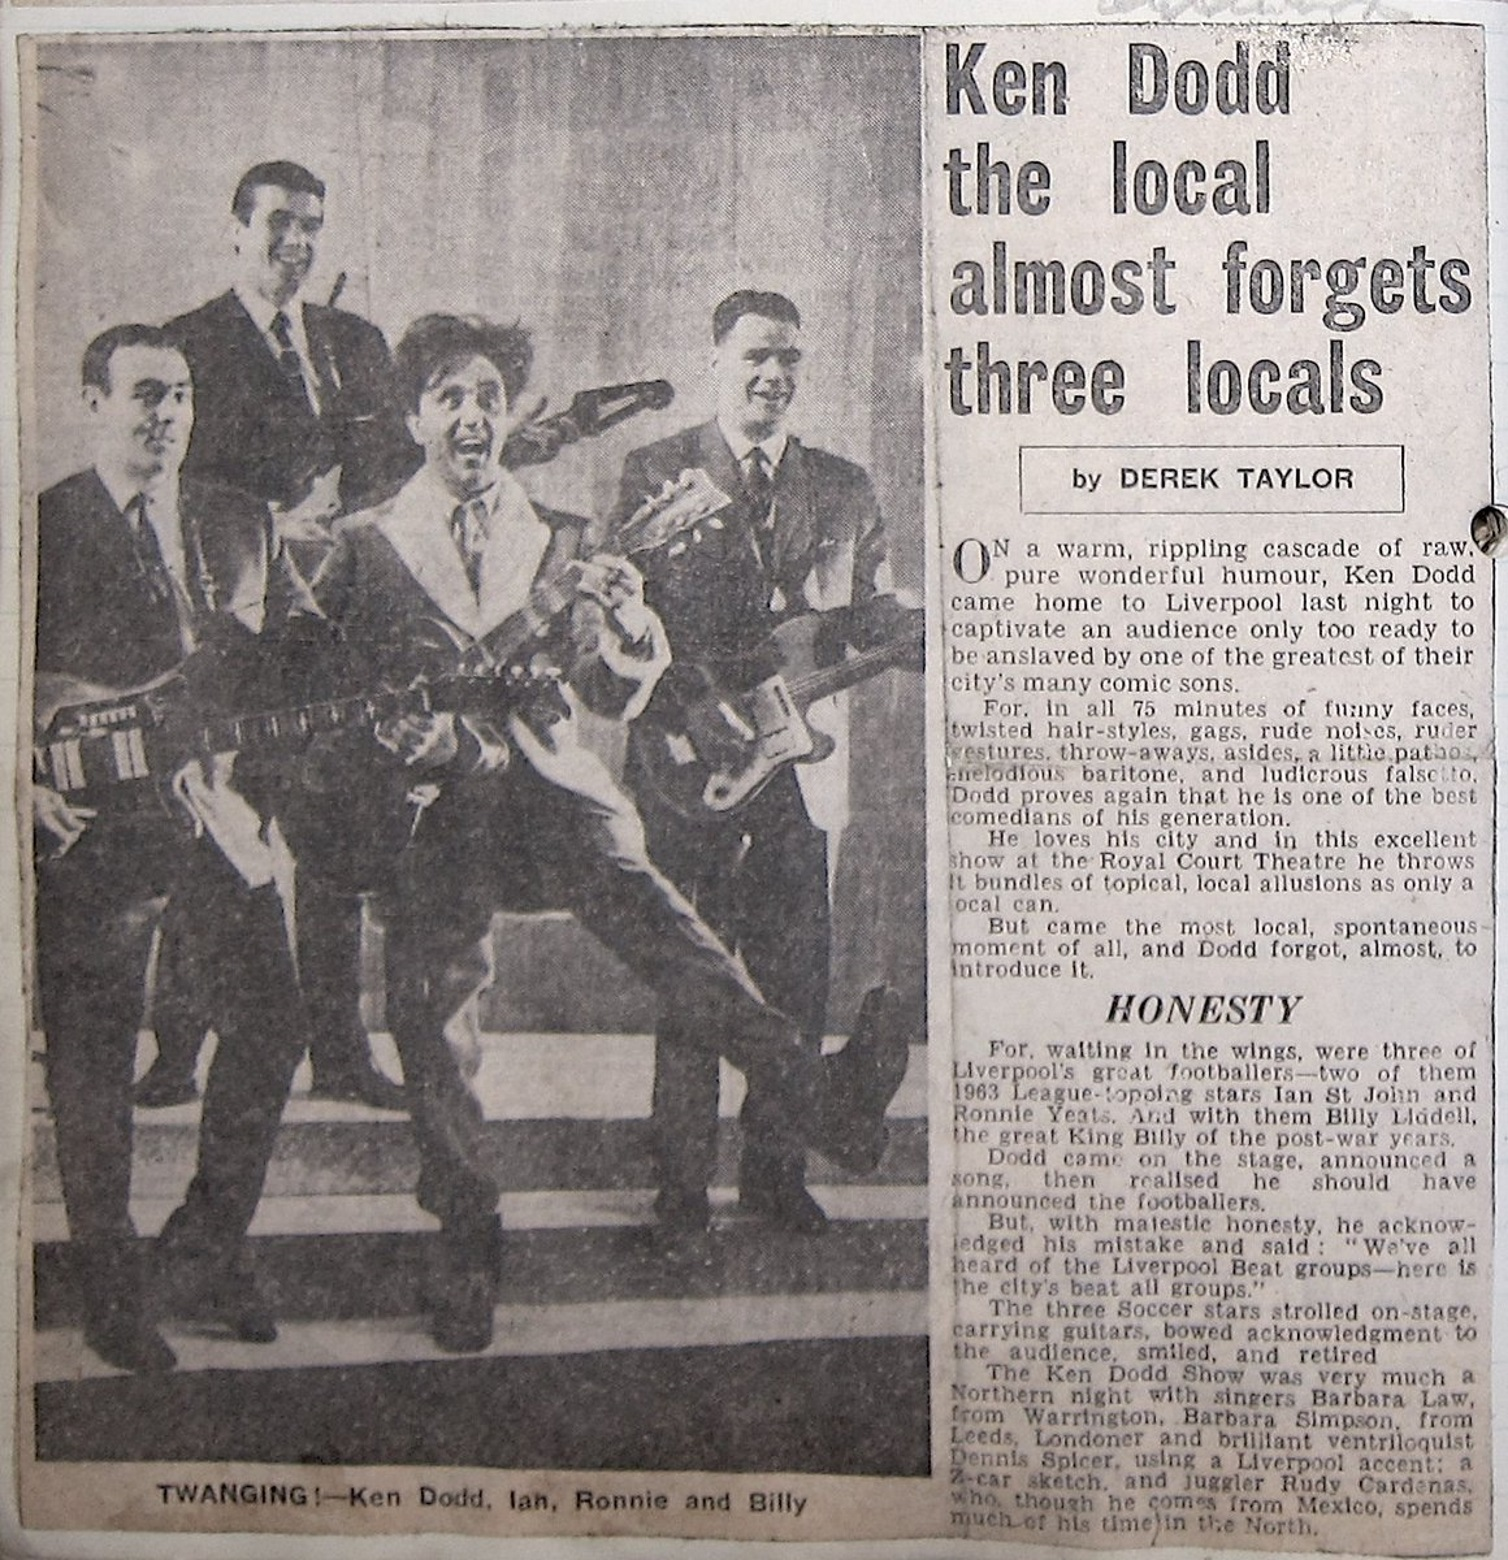 In the Liverpool FC version of the Beatles in Ked Dodds' 1964 Christmas show